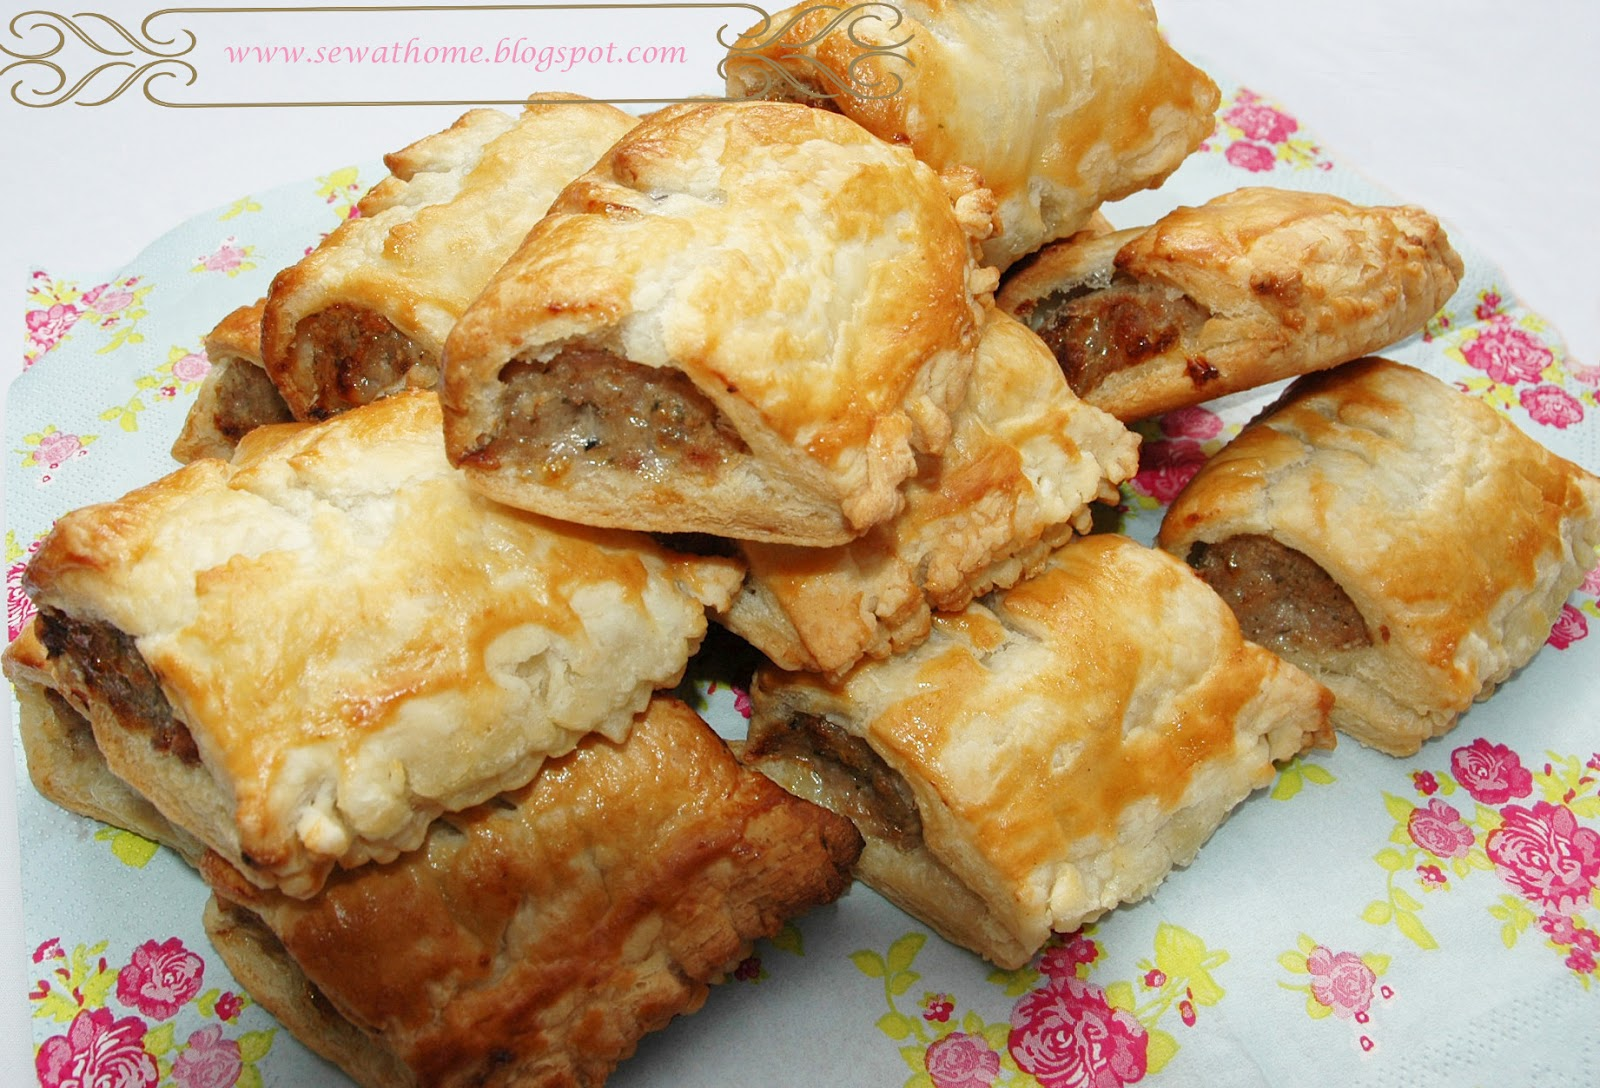 At home with My Golden Pear: Homemade Sausage Rolls